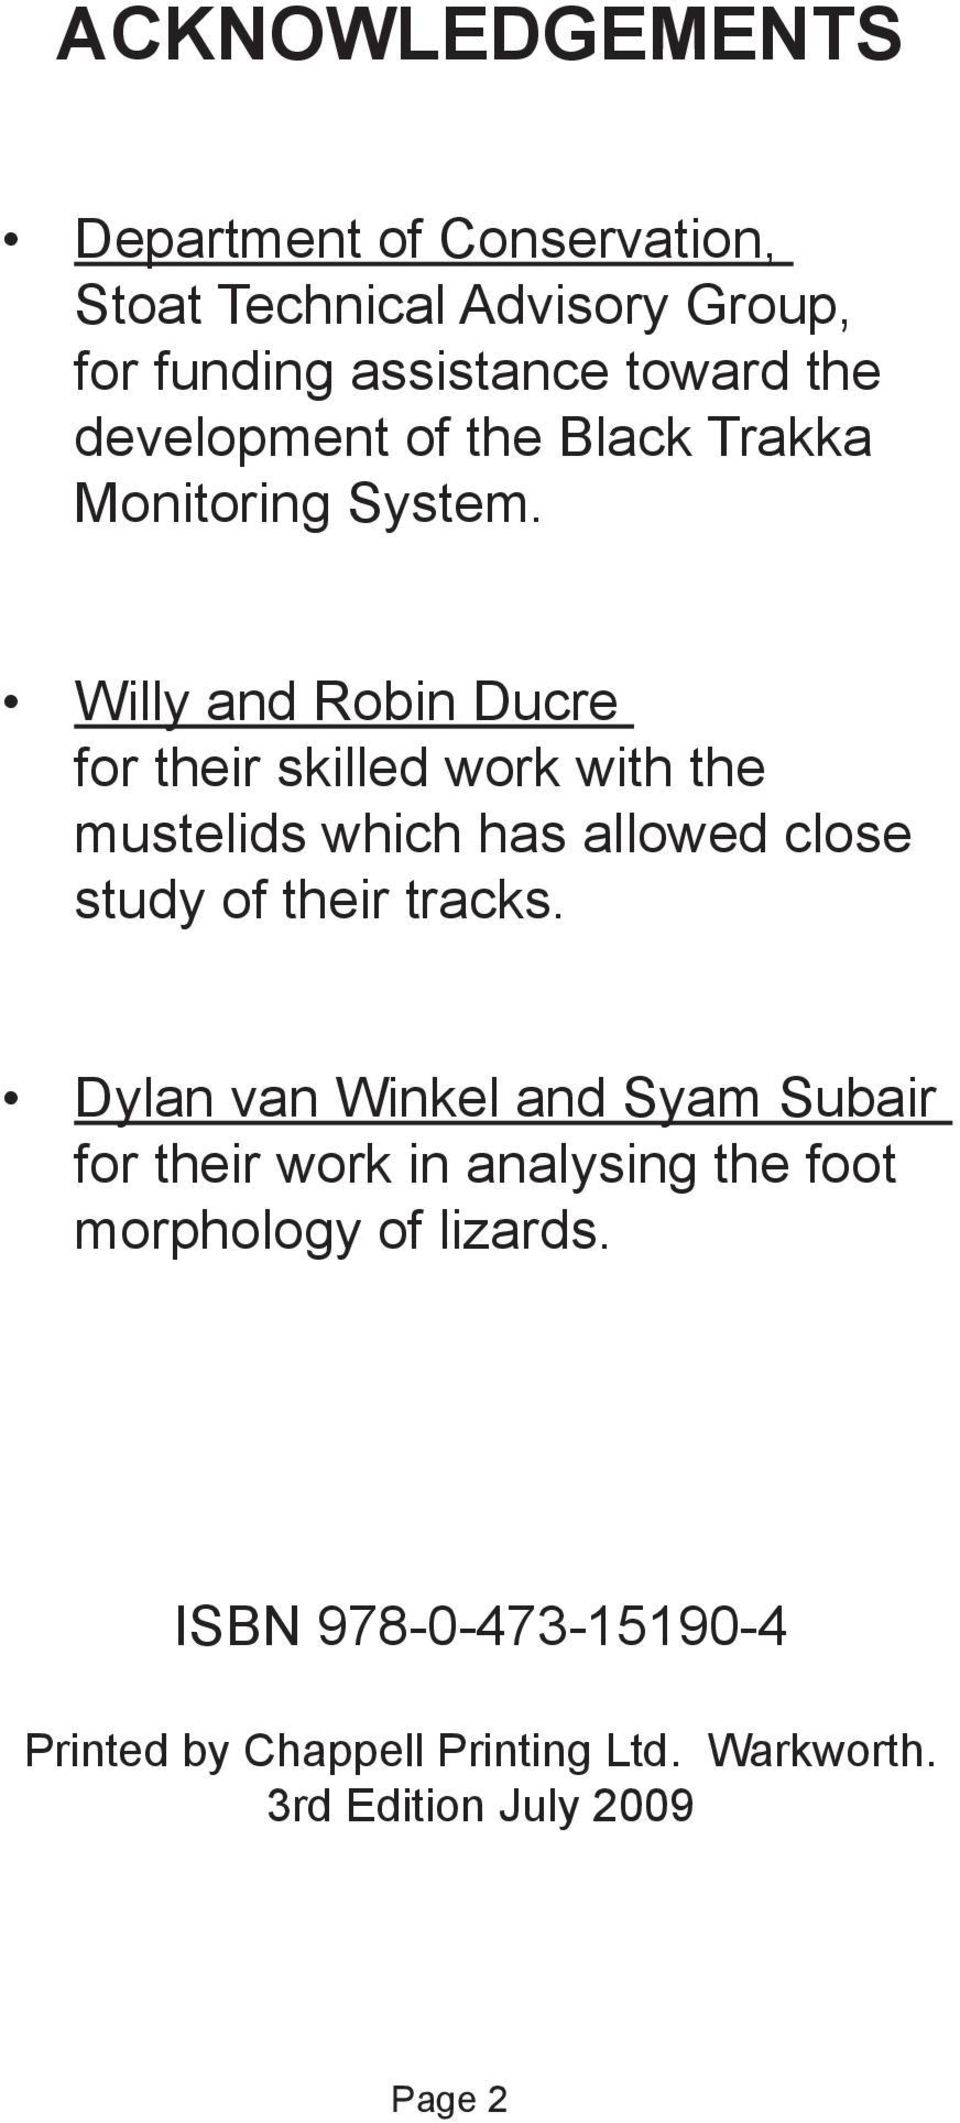 Willy and Robin Ducre for their skilled work with the mustelids which has allowed close study of their tracks.